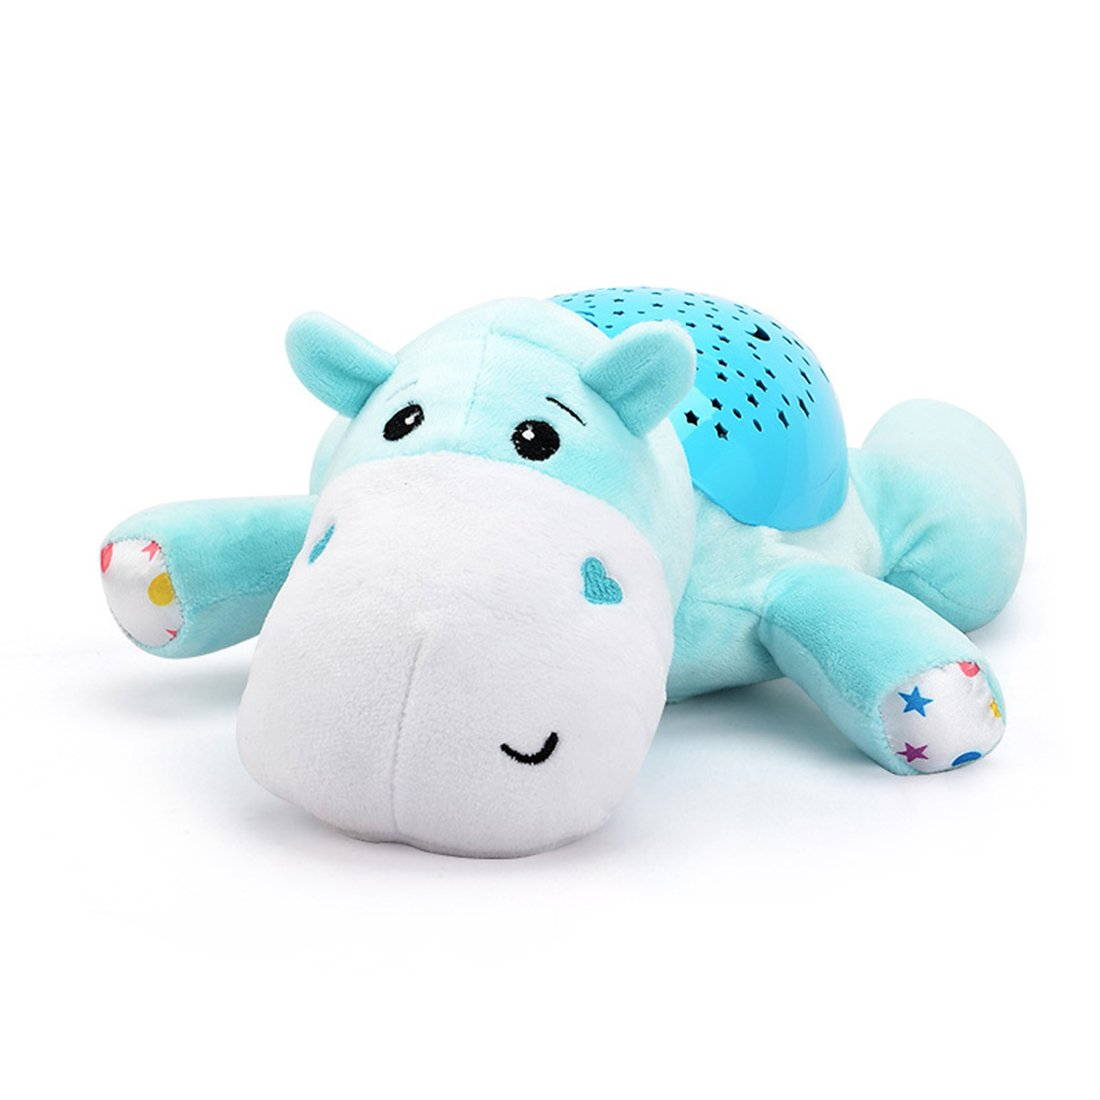 ESOCOME Baby Plush Hippo Toy Hypnotic Star and Moon Light Projector with Melodies -Animal Doll Sleep Soother Starry Night Light for Baby Infant Kids Nursery by ESOCOME (Image #1)